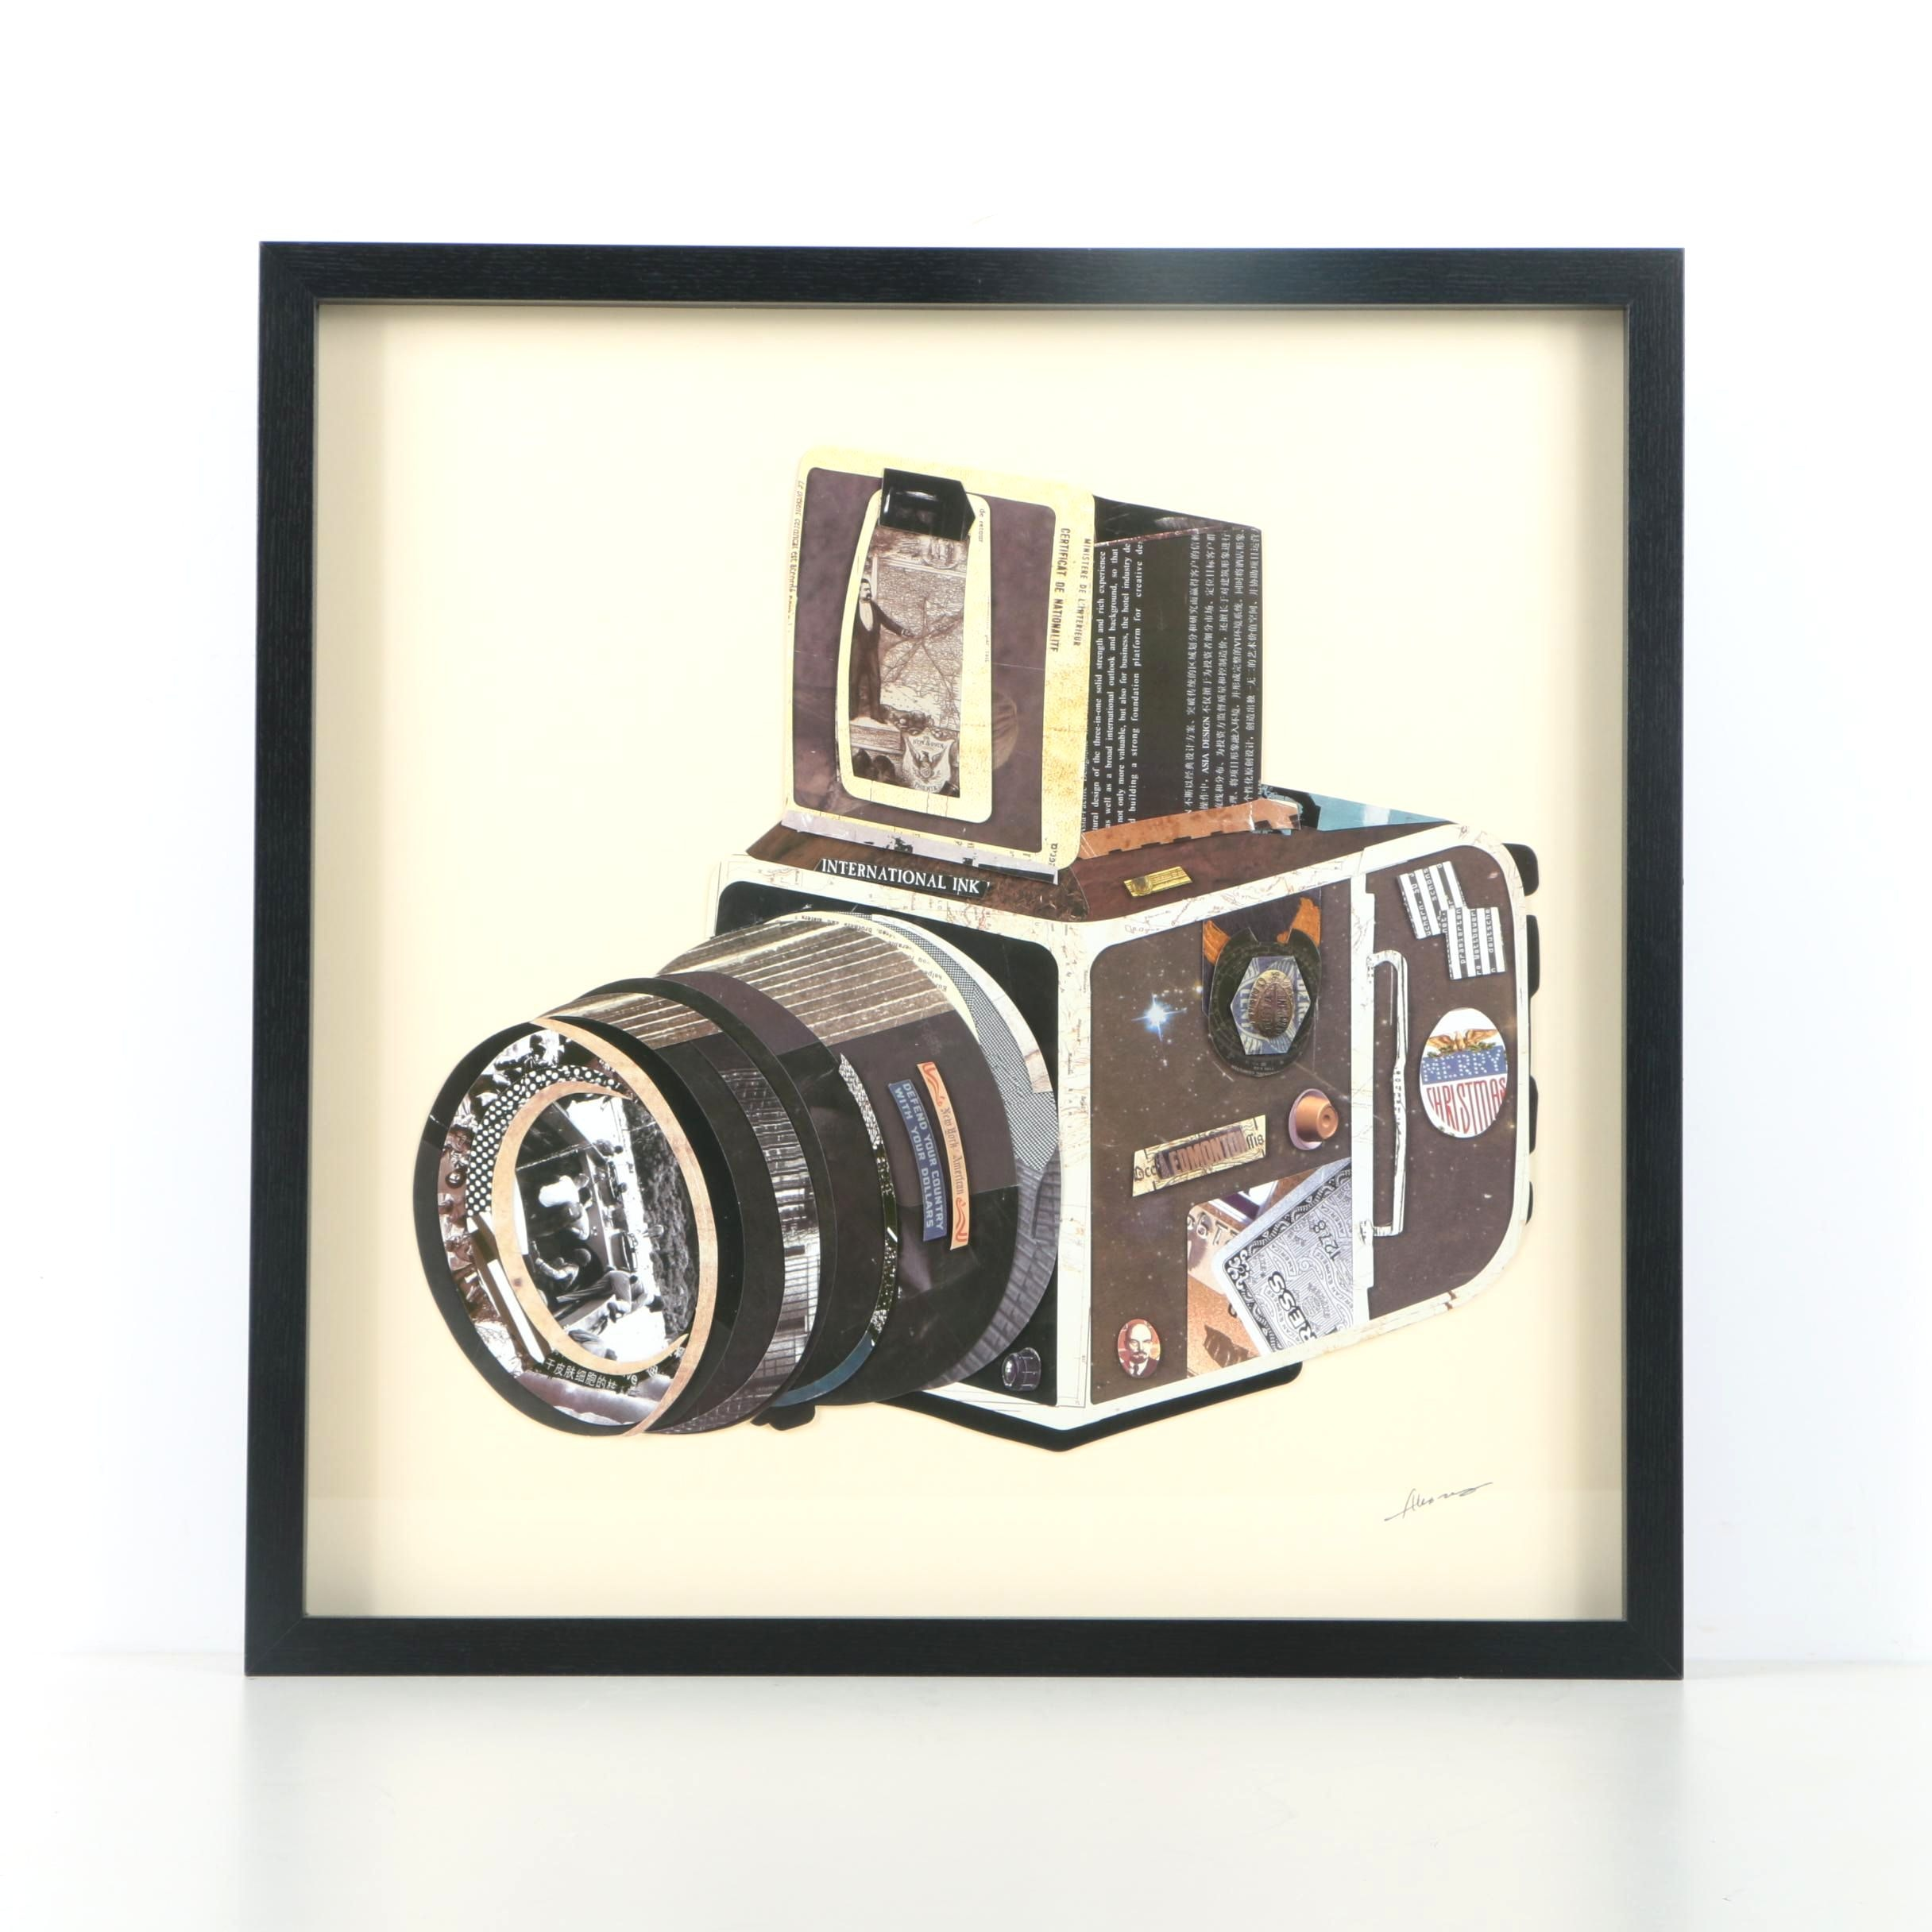 Alex Zeng Collage of a Camera